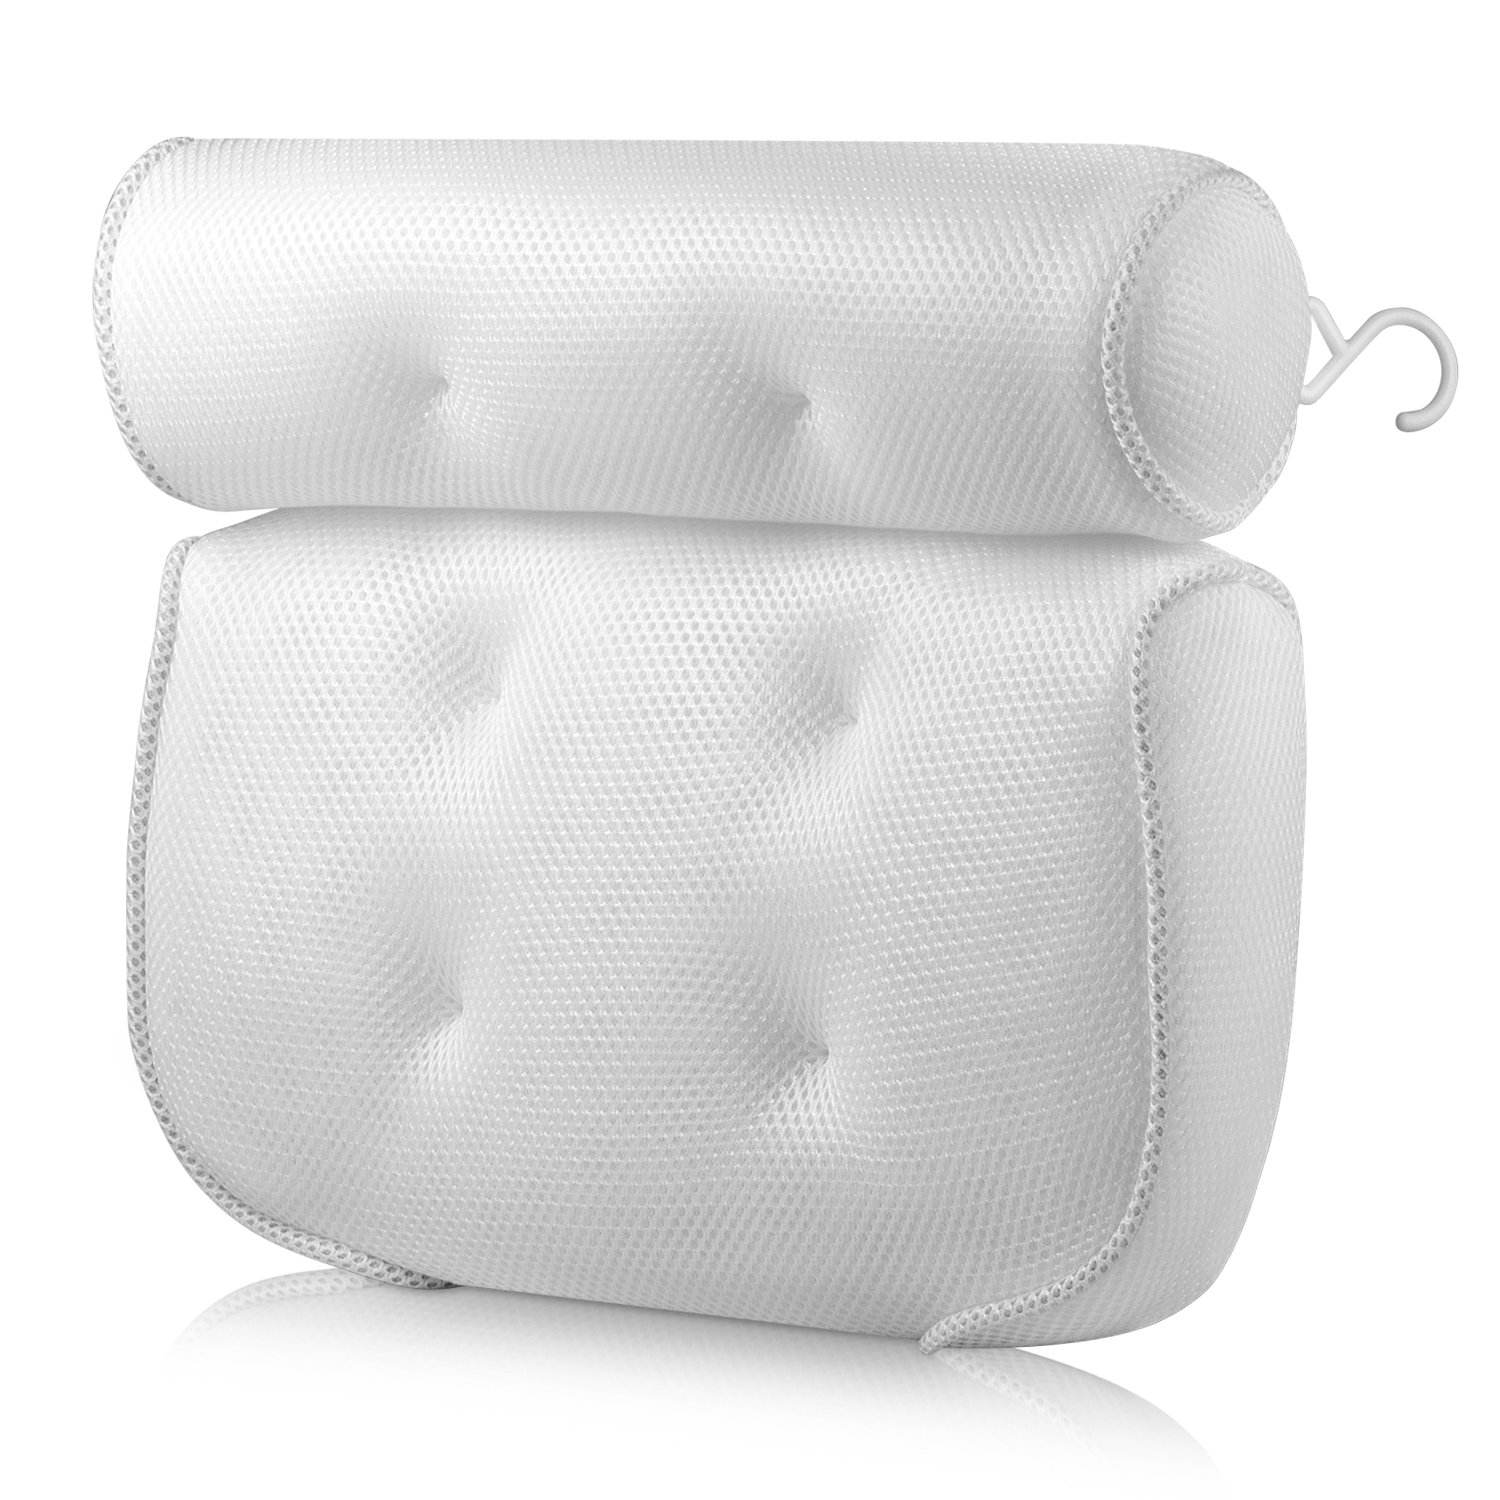 Bath Pillow (Premium Quality), Luxury Bathtub Pillow Rest (Powerful Suction Cups), Bath Pillows for Tub Neck and Back Support, S